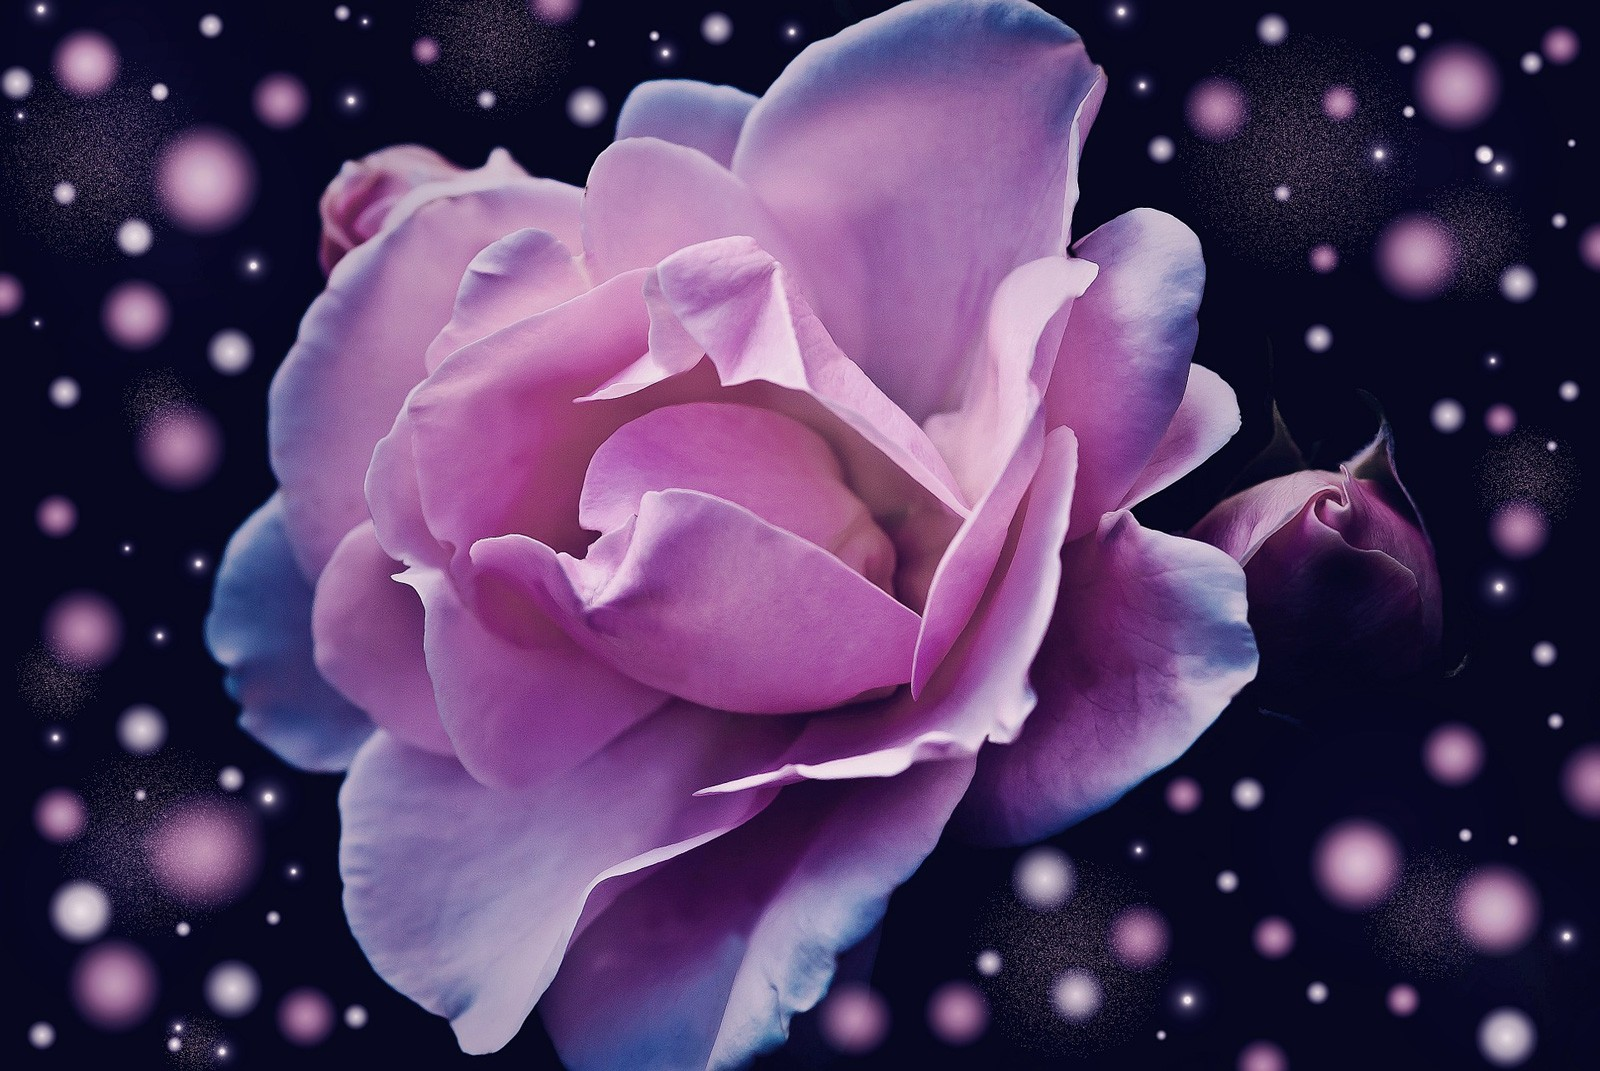 Flower Meanings In Dreams Interpreting Flower Dreams Whats Your Sign